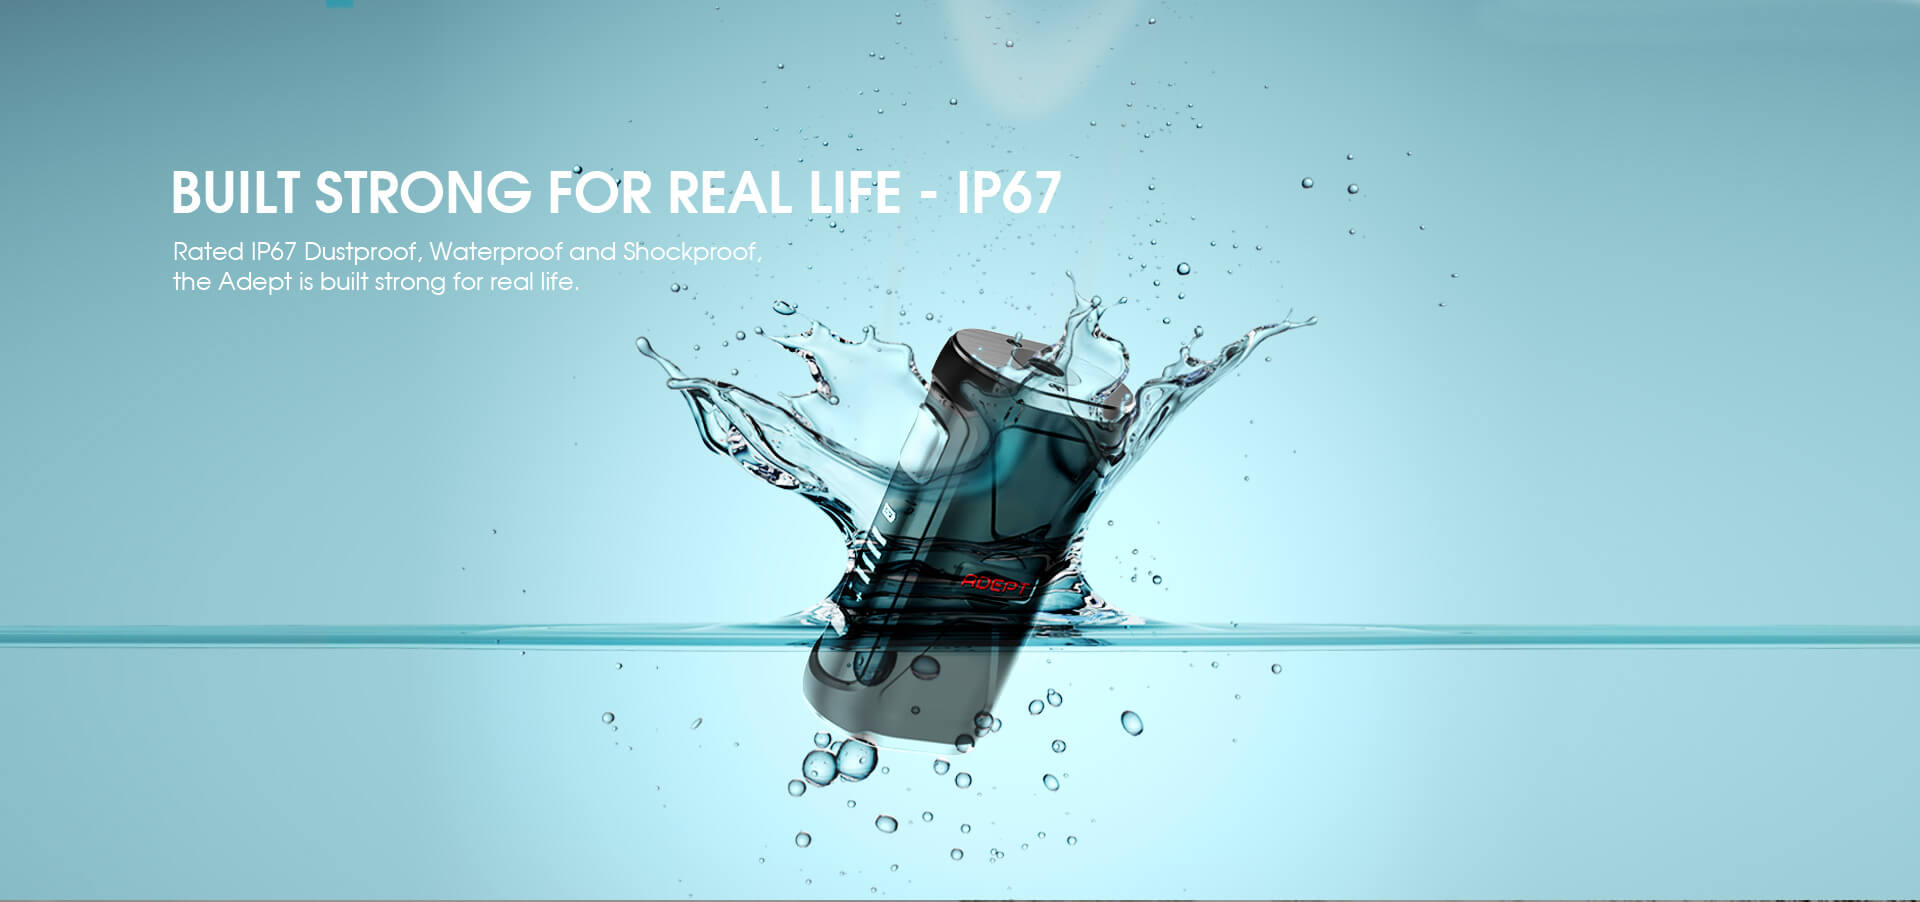 Built Strong For Real Life - IP67